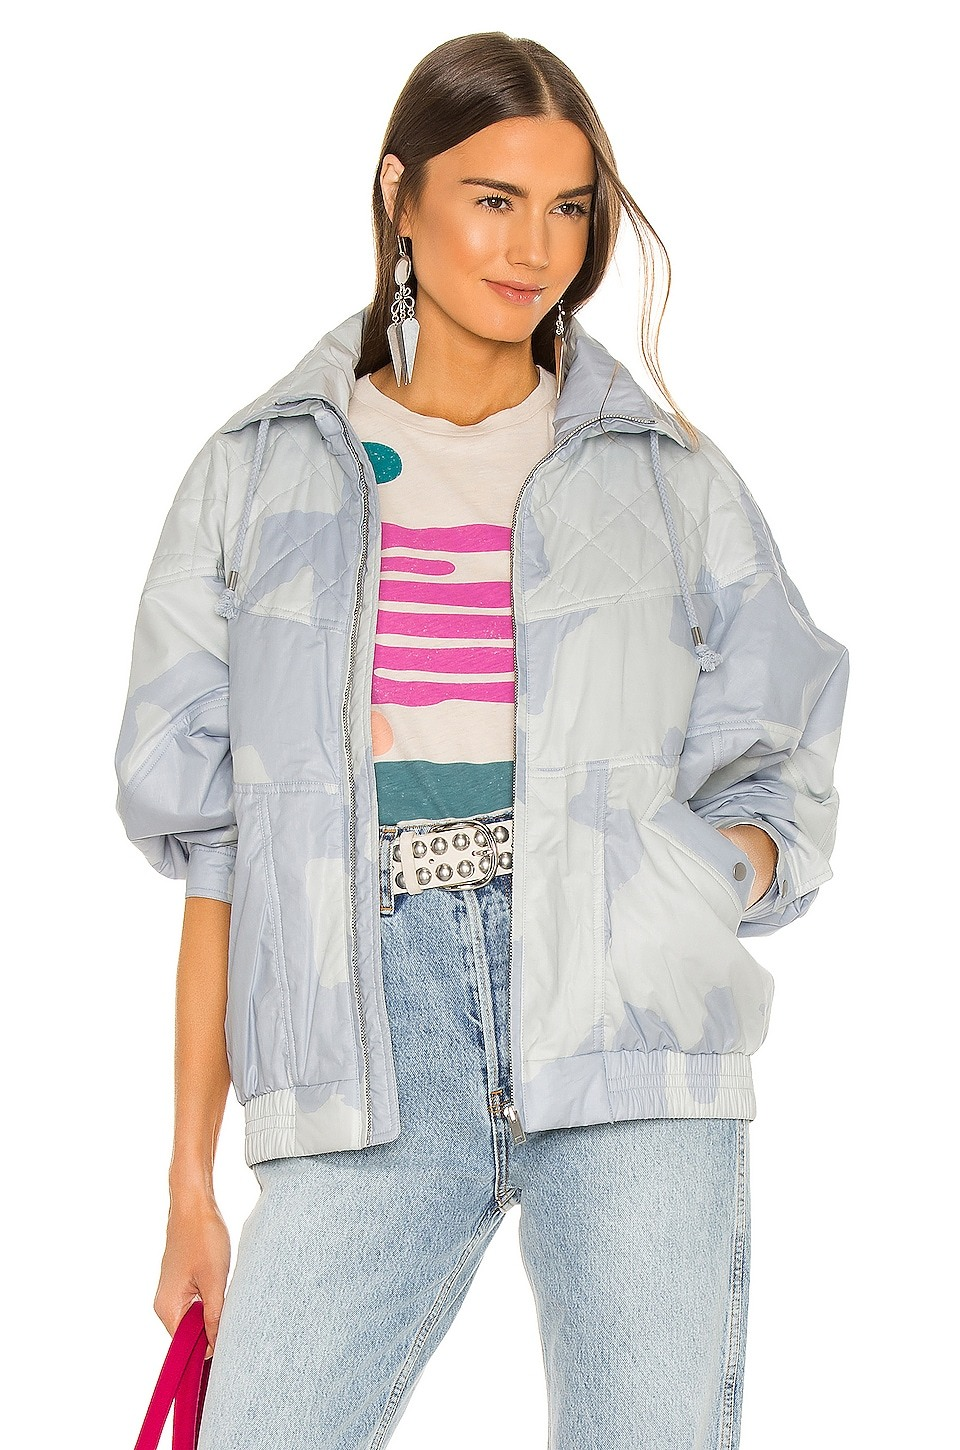 Diaomia Jacket by Isabel Marant Etoile, available on revolve.com for $229 Alessandra Ambrosio Outerwear Exact Product